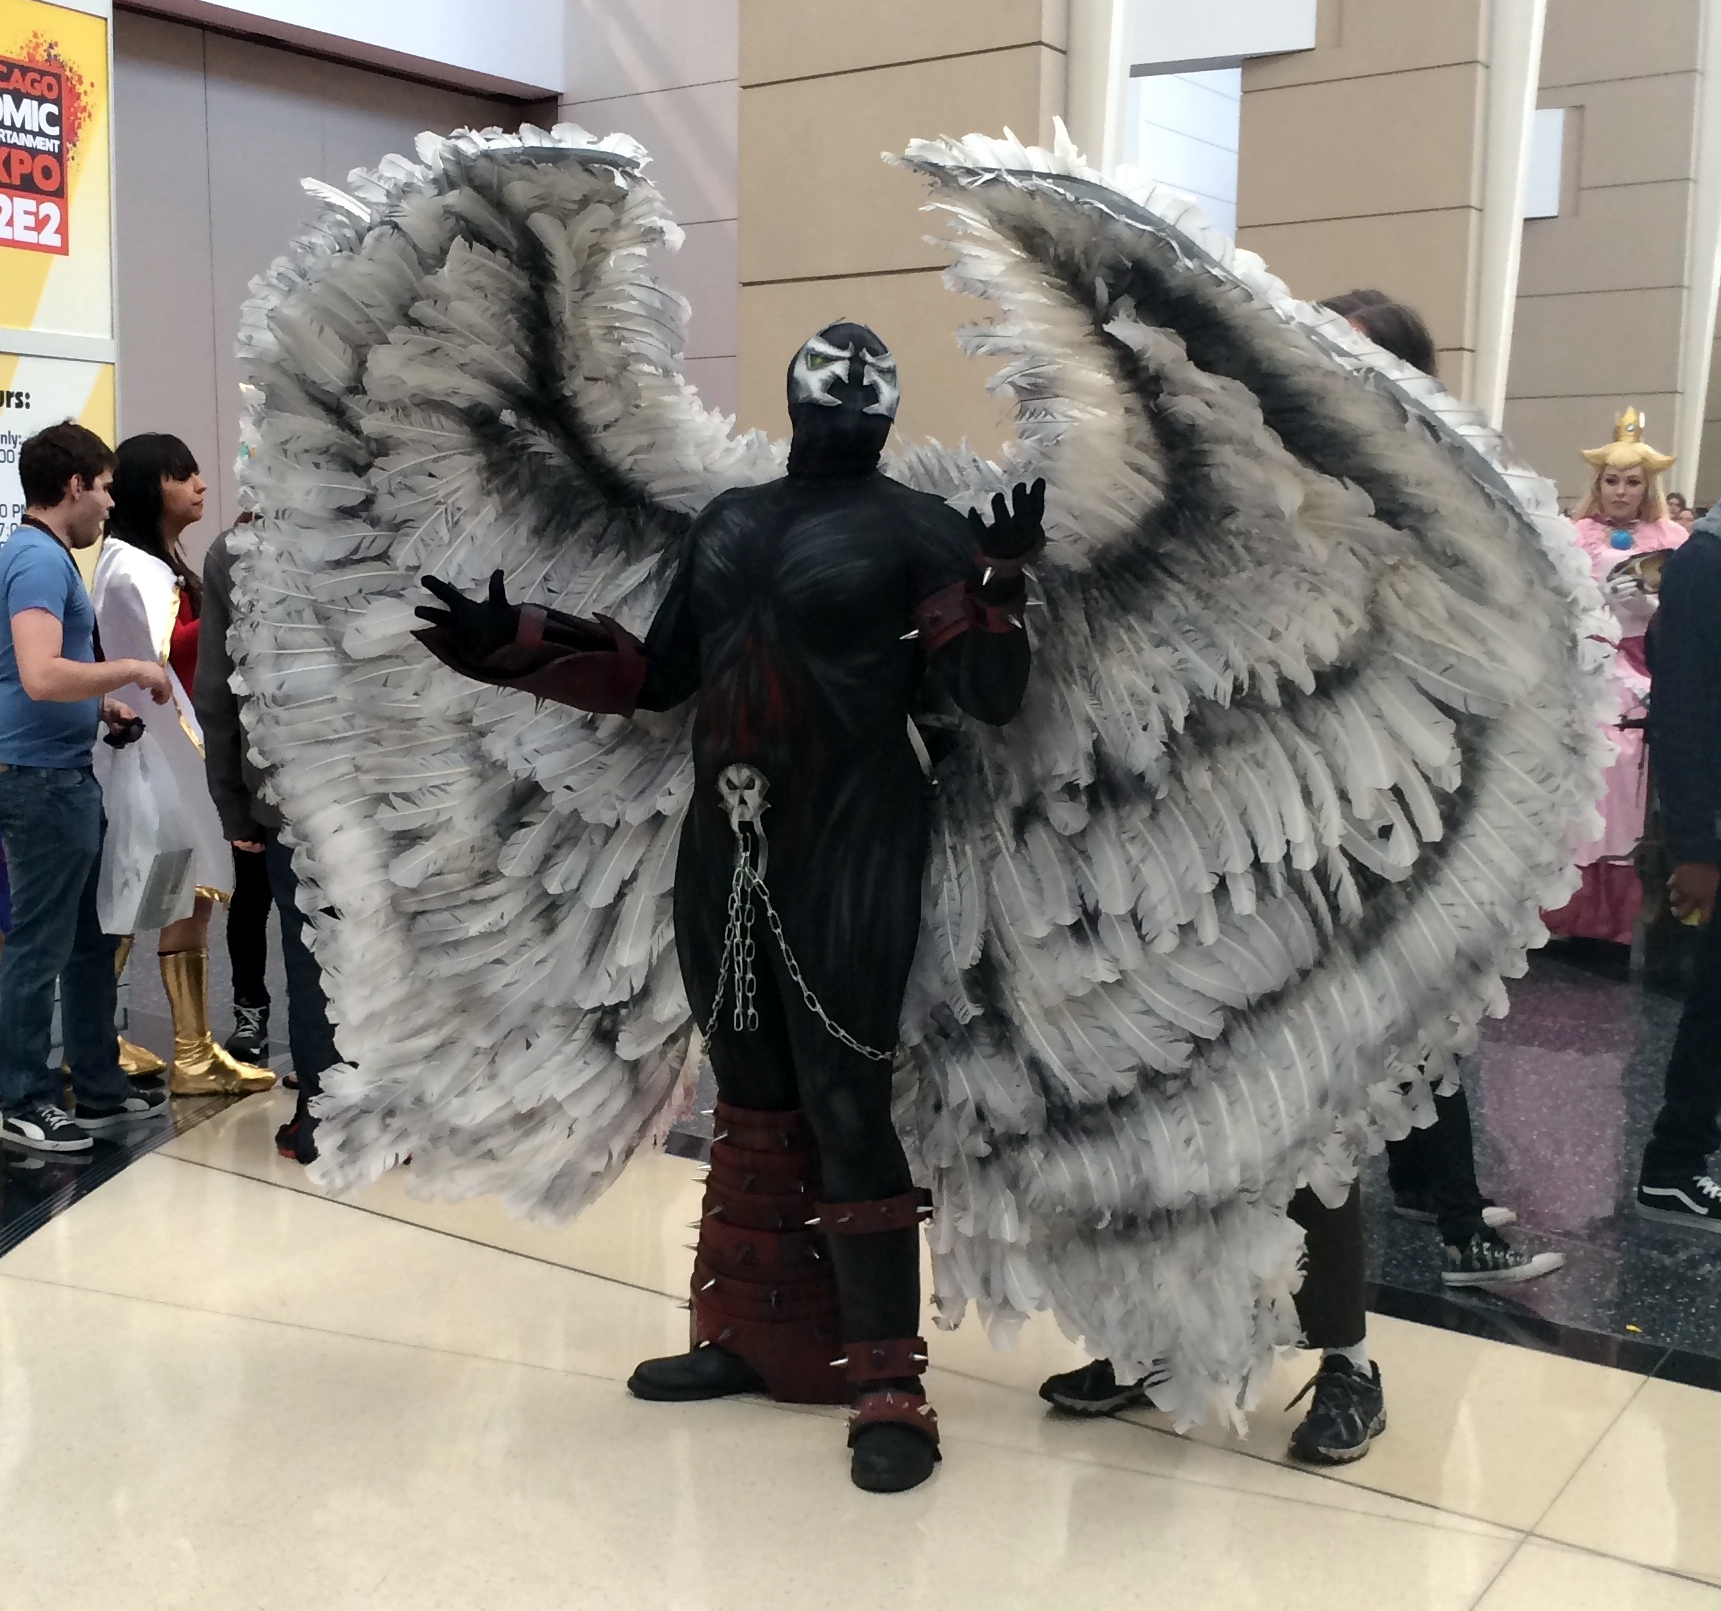 I Went To C2E2 And Didn't Take Pictures